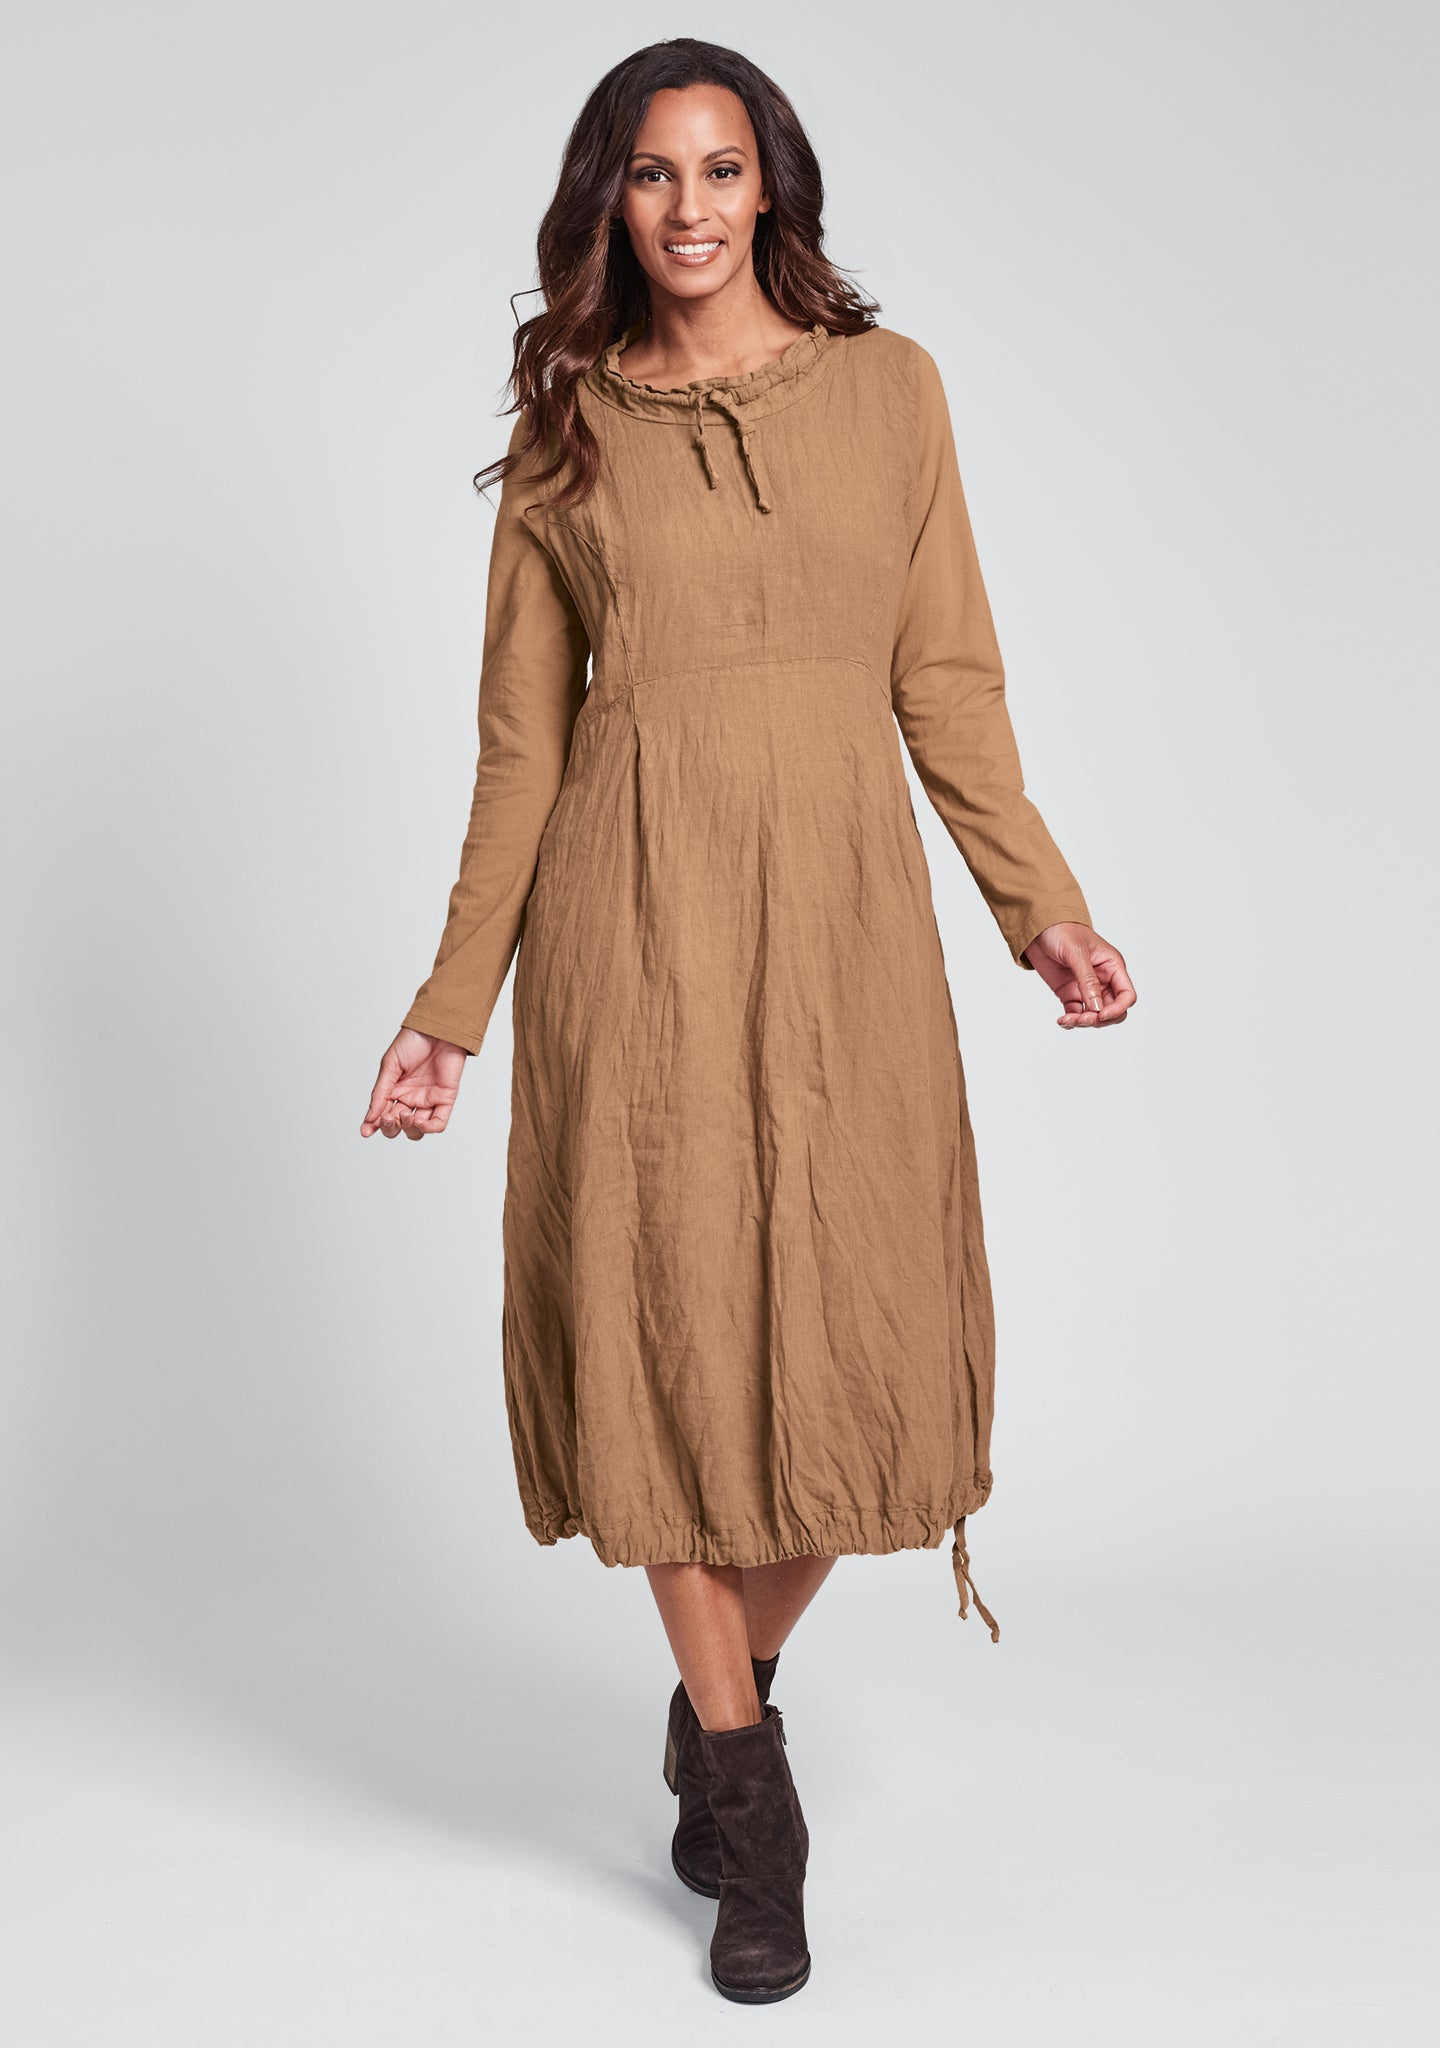 revere dress long sleeve linen dress orange